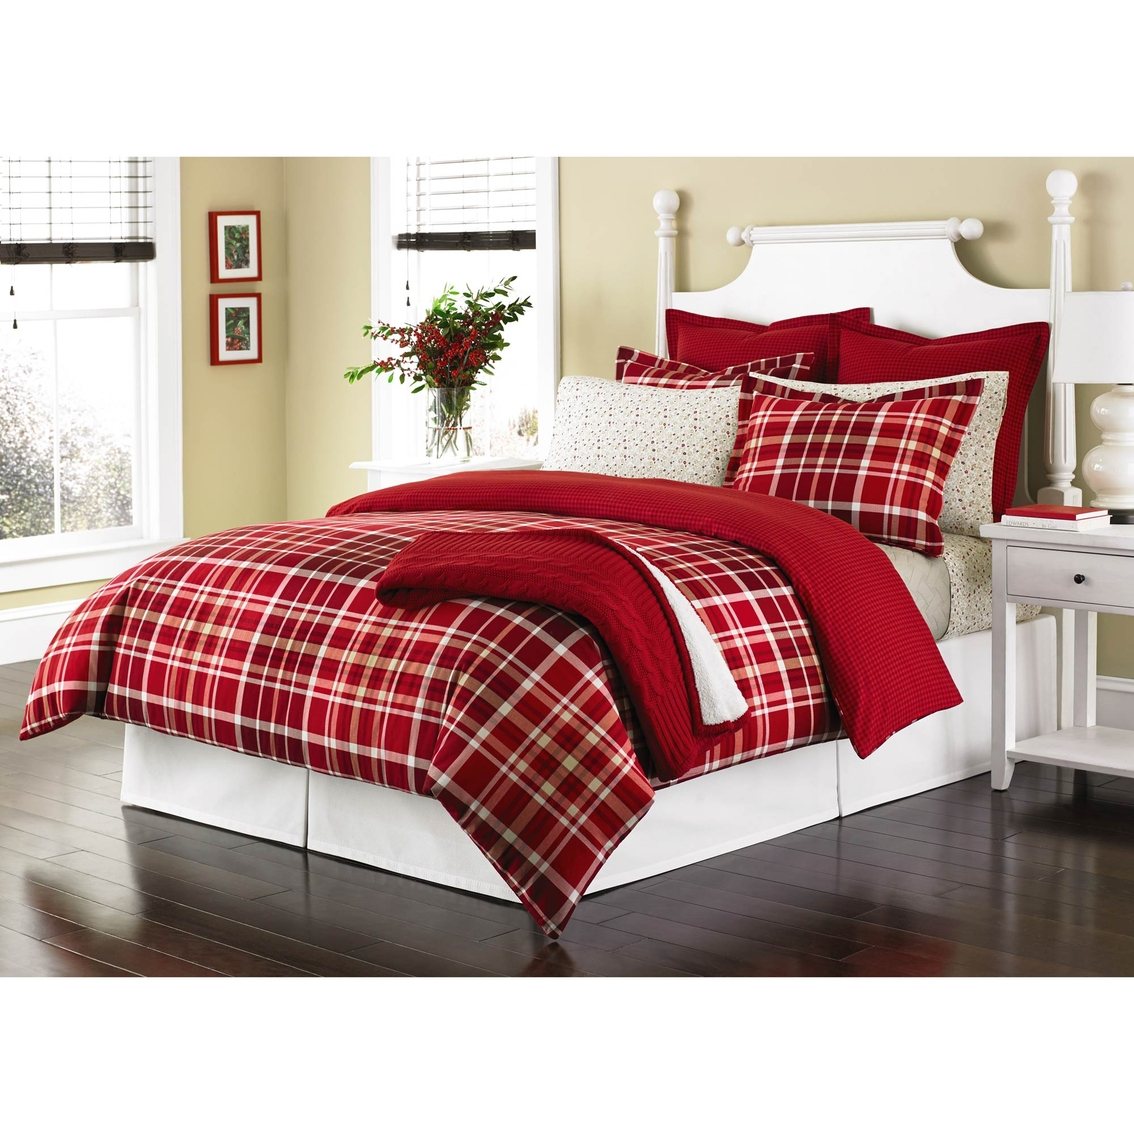 Where To Buy Nice Duvet Covers Martha Stewart Collection Winter Tartan Flannel Duvet Cover Set